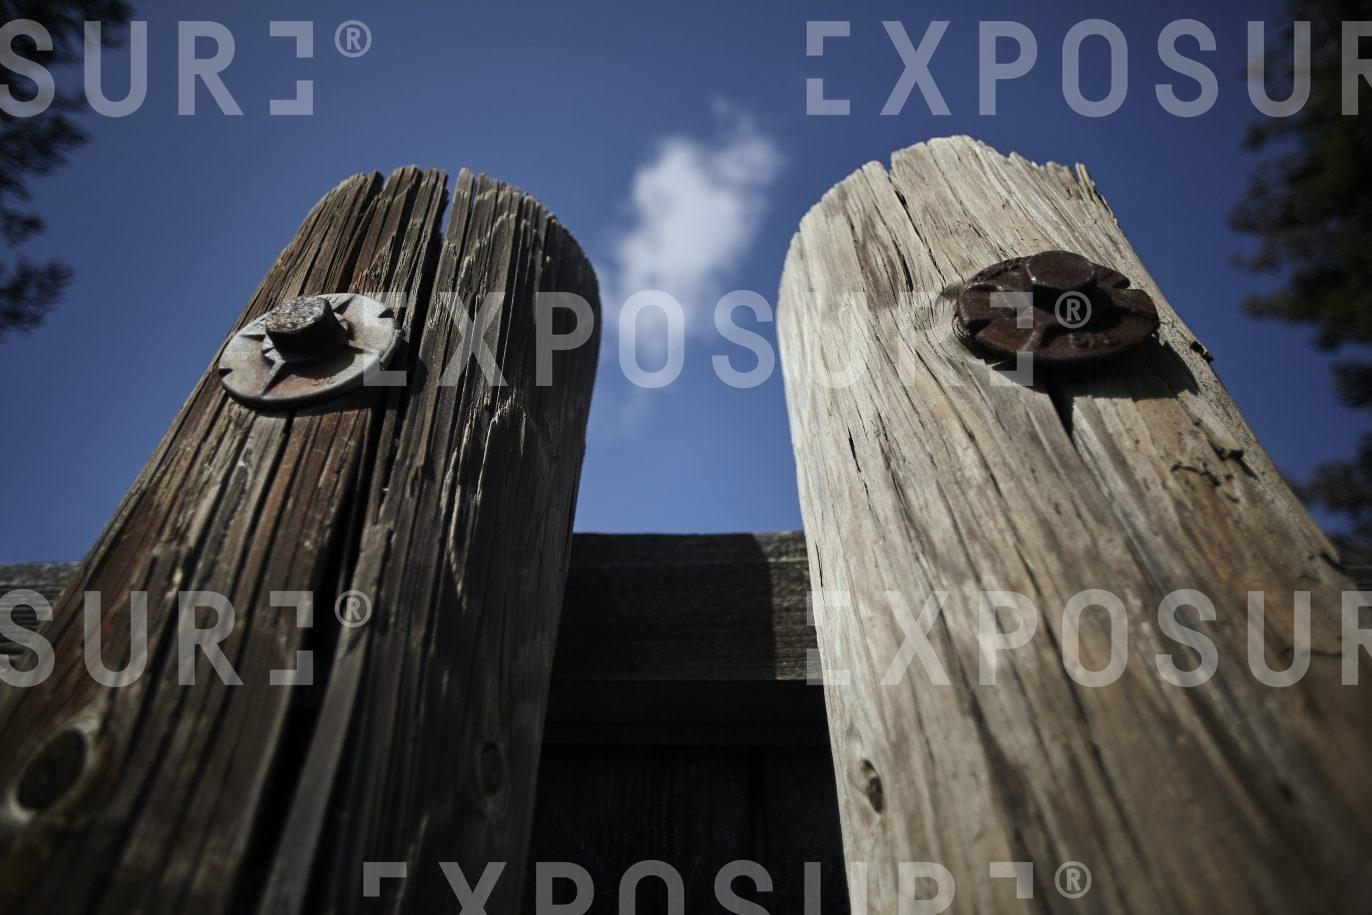 California, two old wooden pilings